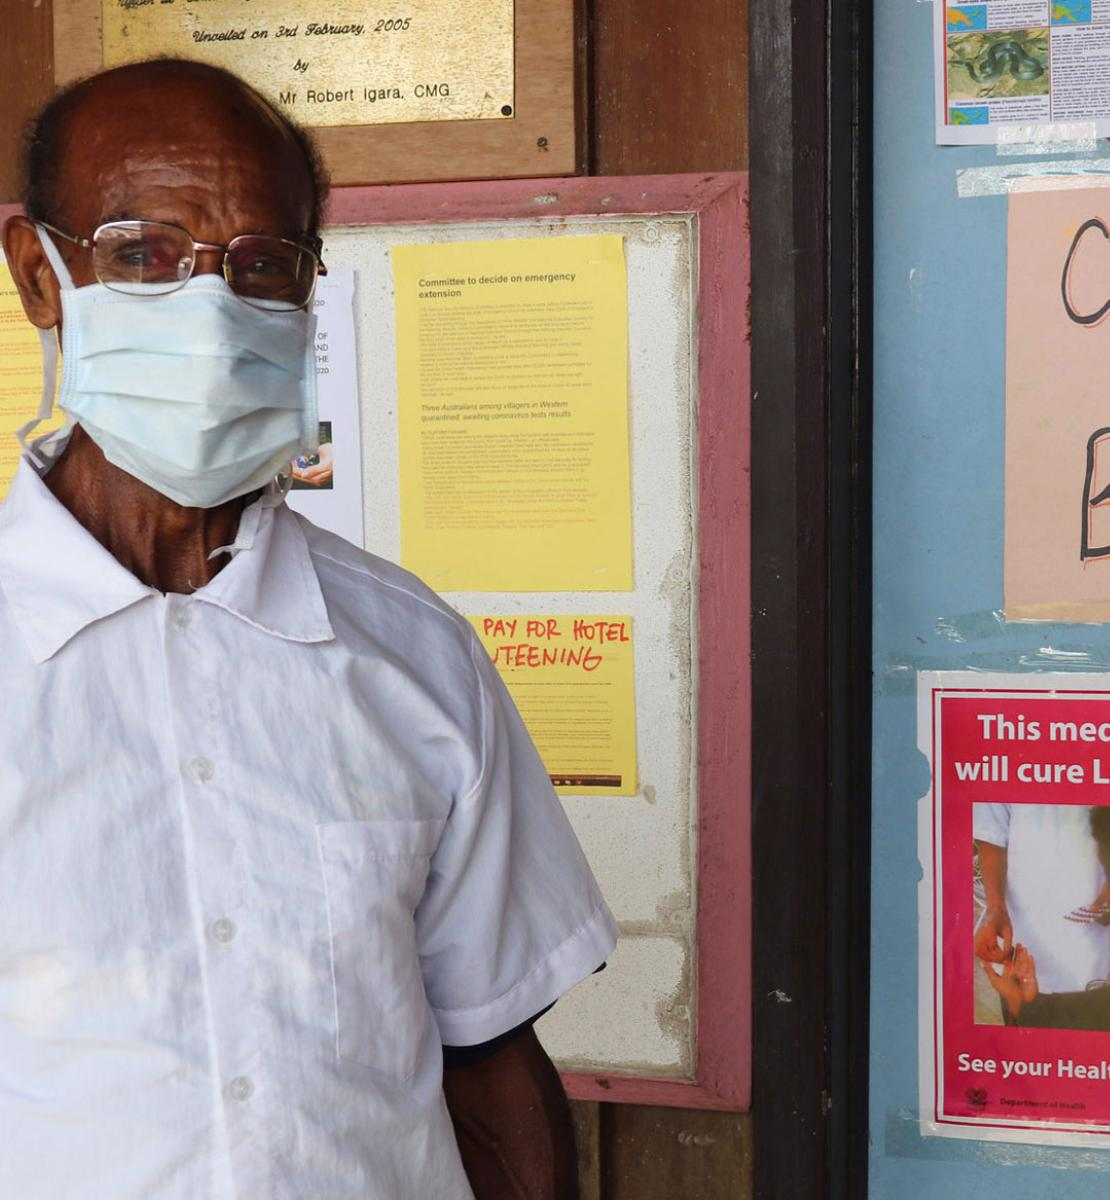 A man with a white shirt and a white face mask stands in front of a bulletin board with information on COVID-19.